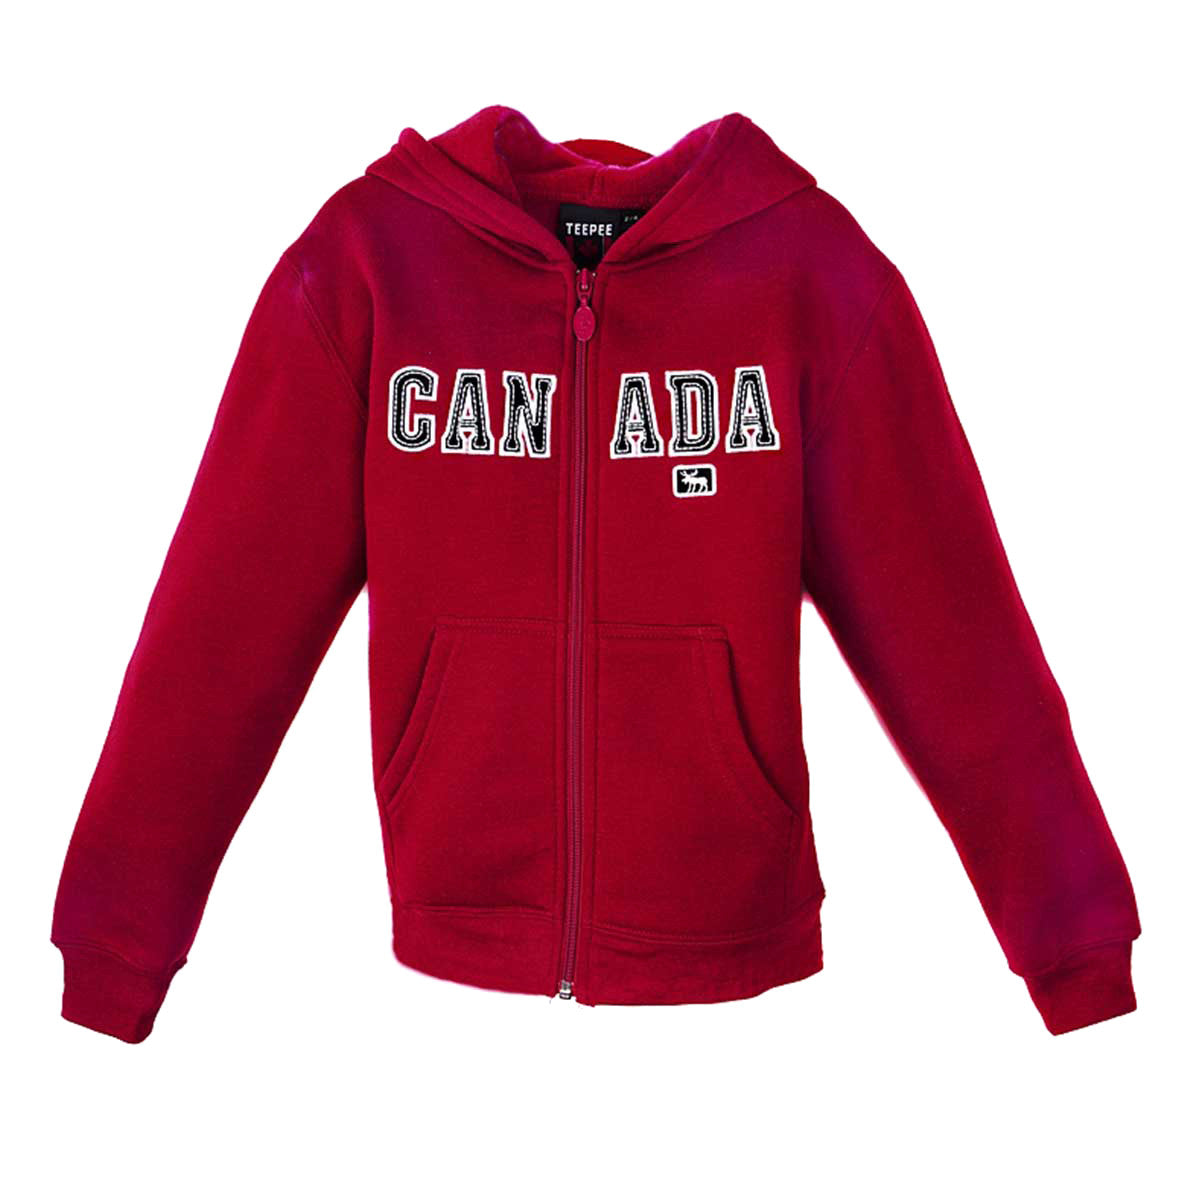 CHILDRENS CANADA RED FLEECE HOODY